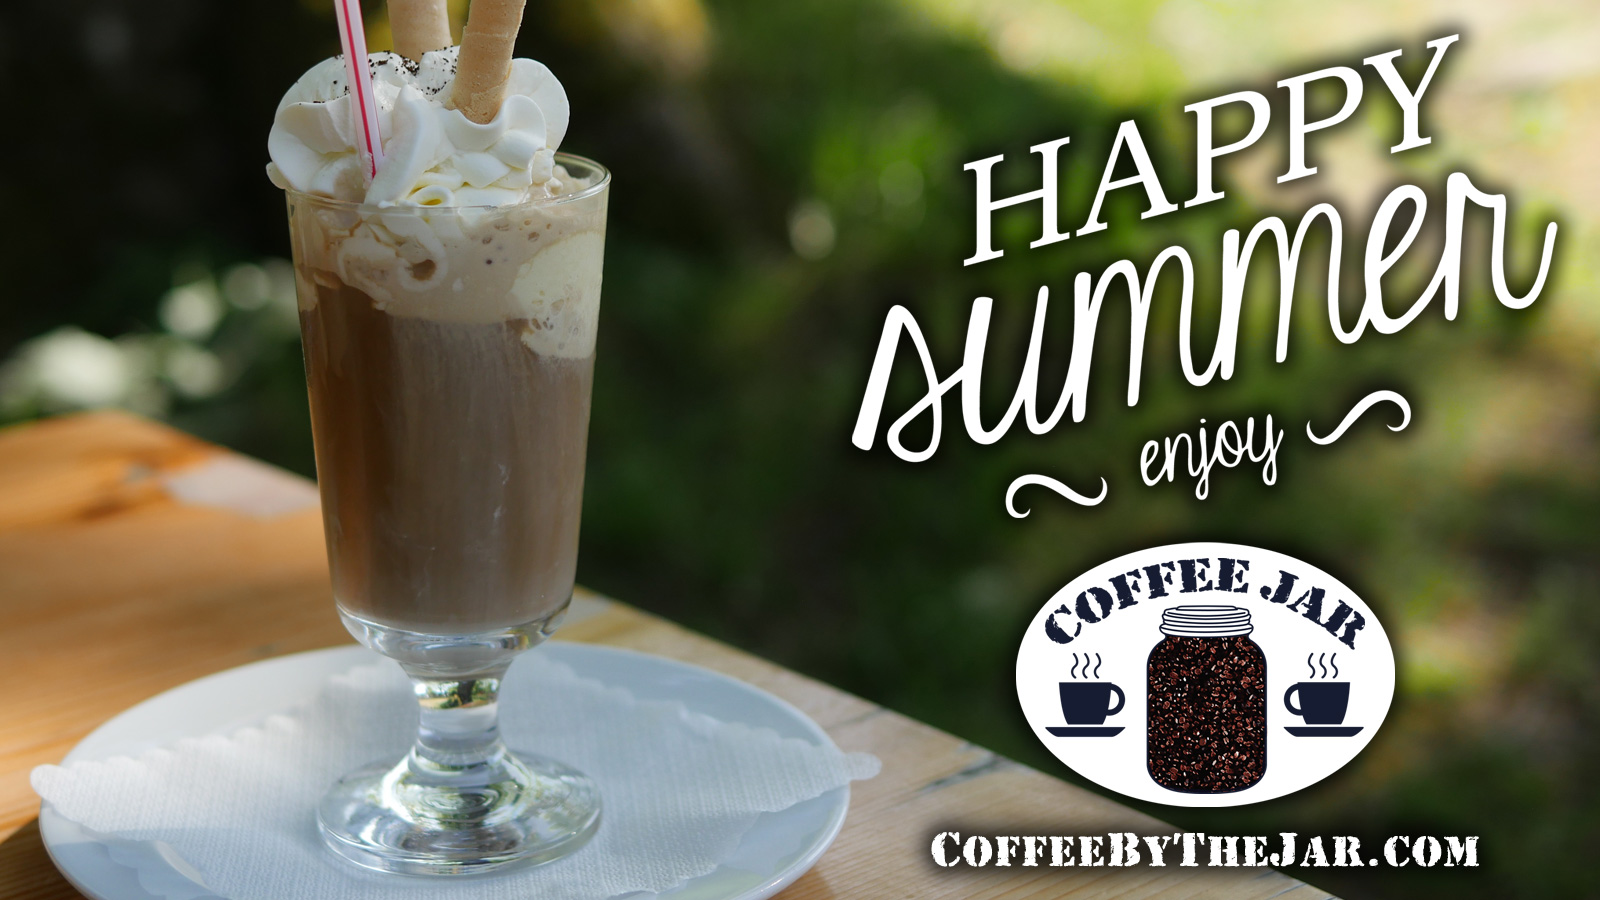 Coffee-Jar-Happy-Summer-wallpaper01-1600x900